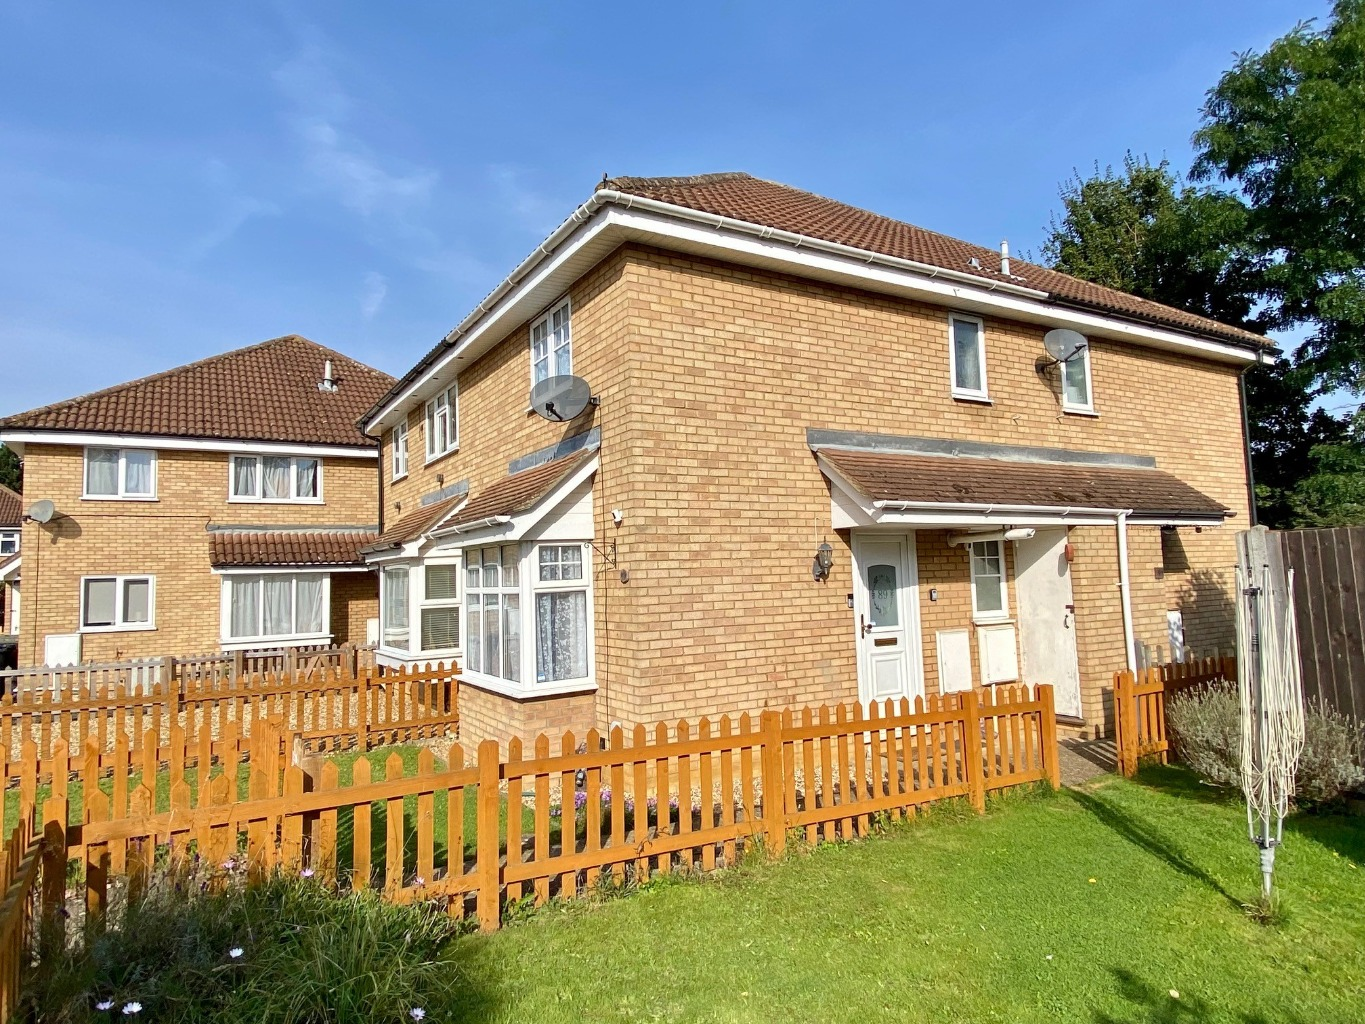 1 bed semi-detached house for sale in Meadowsweet, St. Neots, PE19